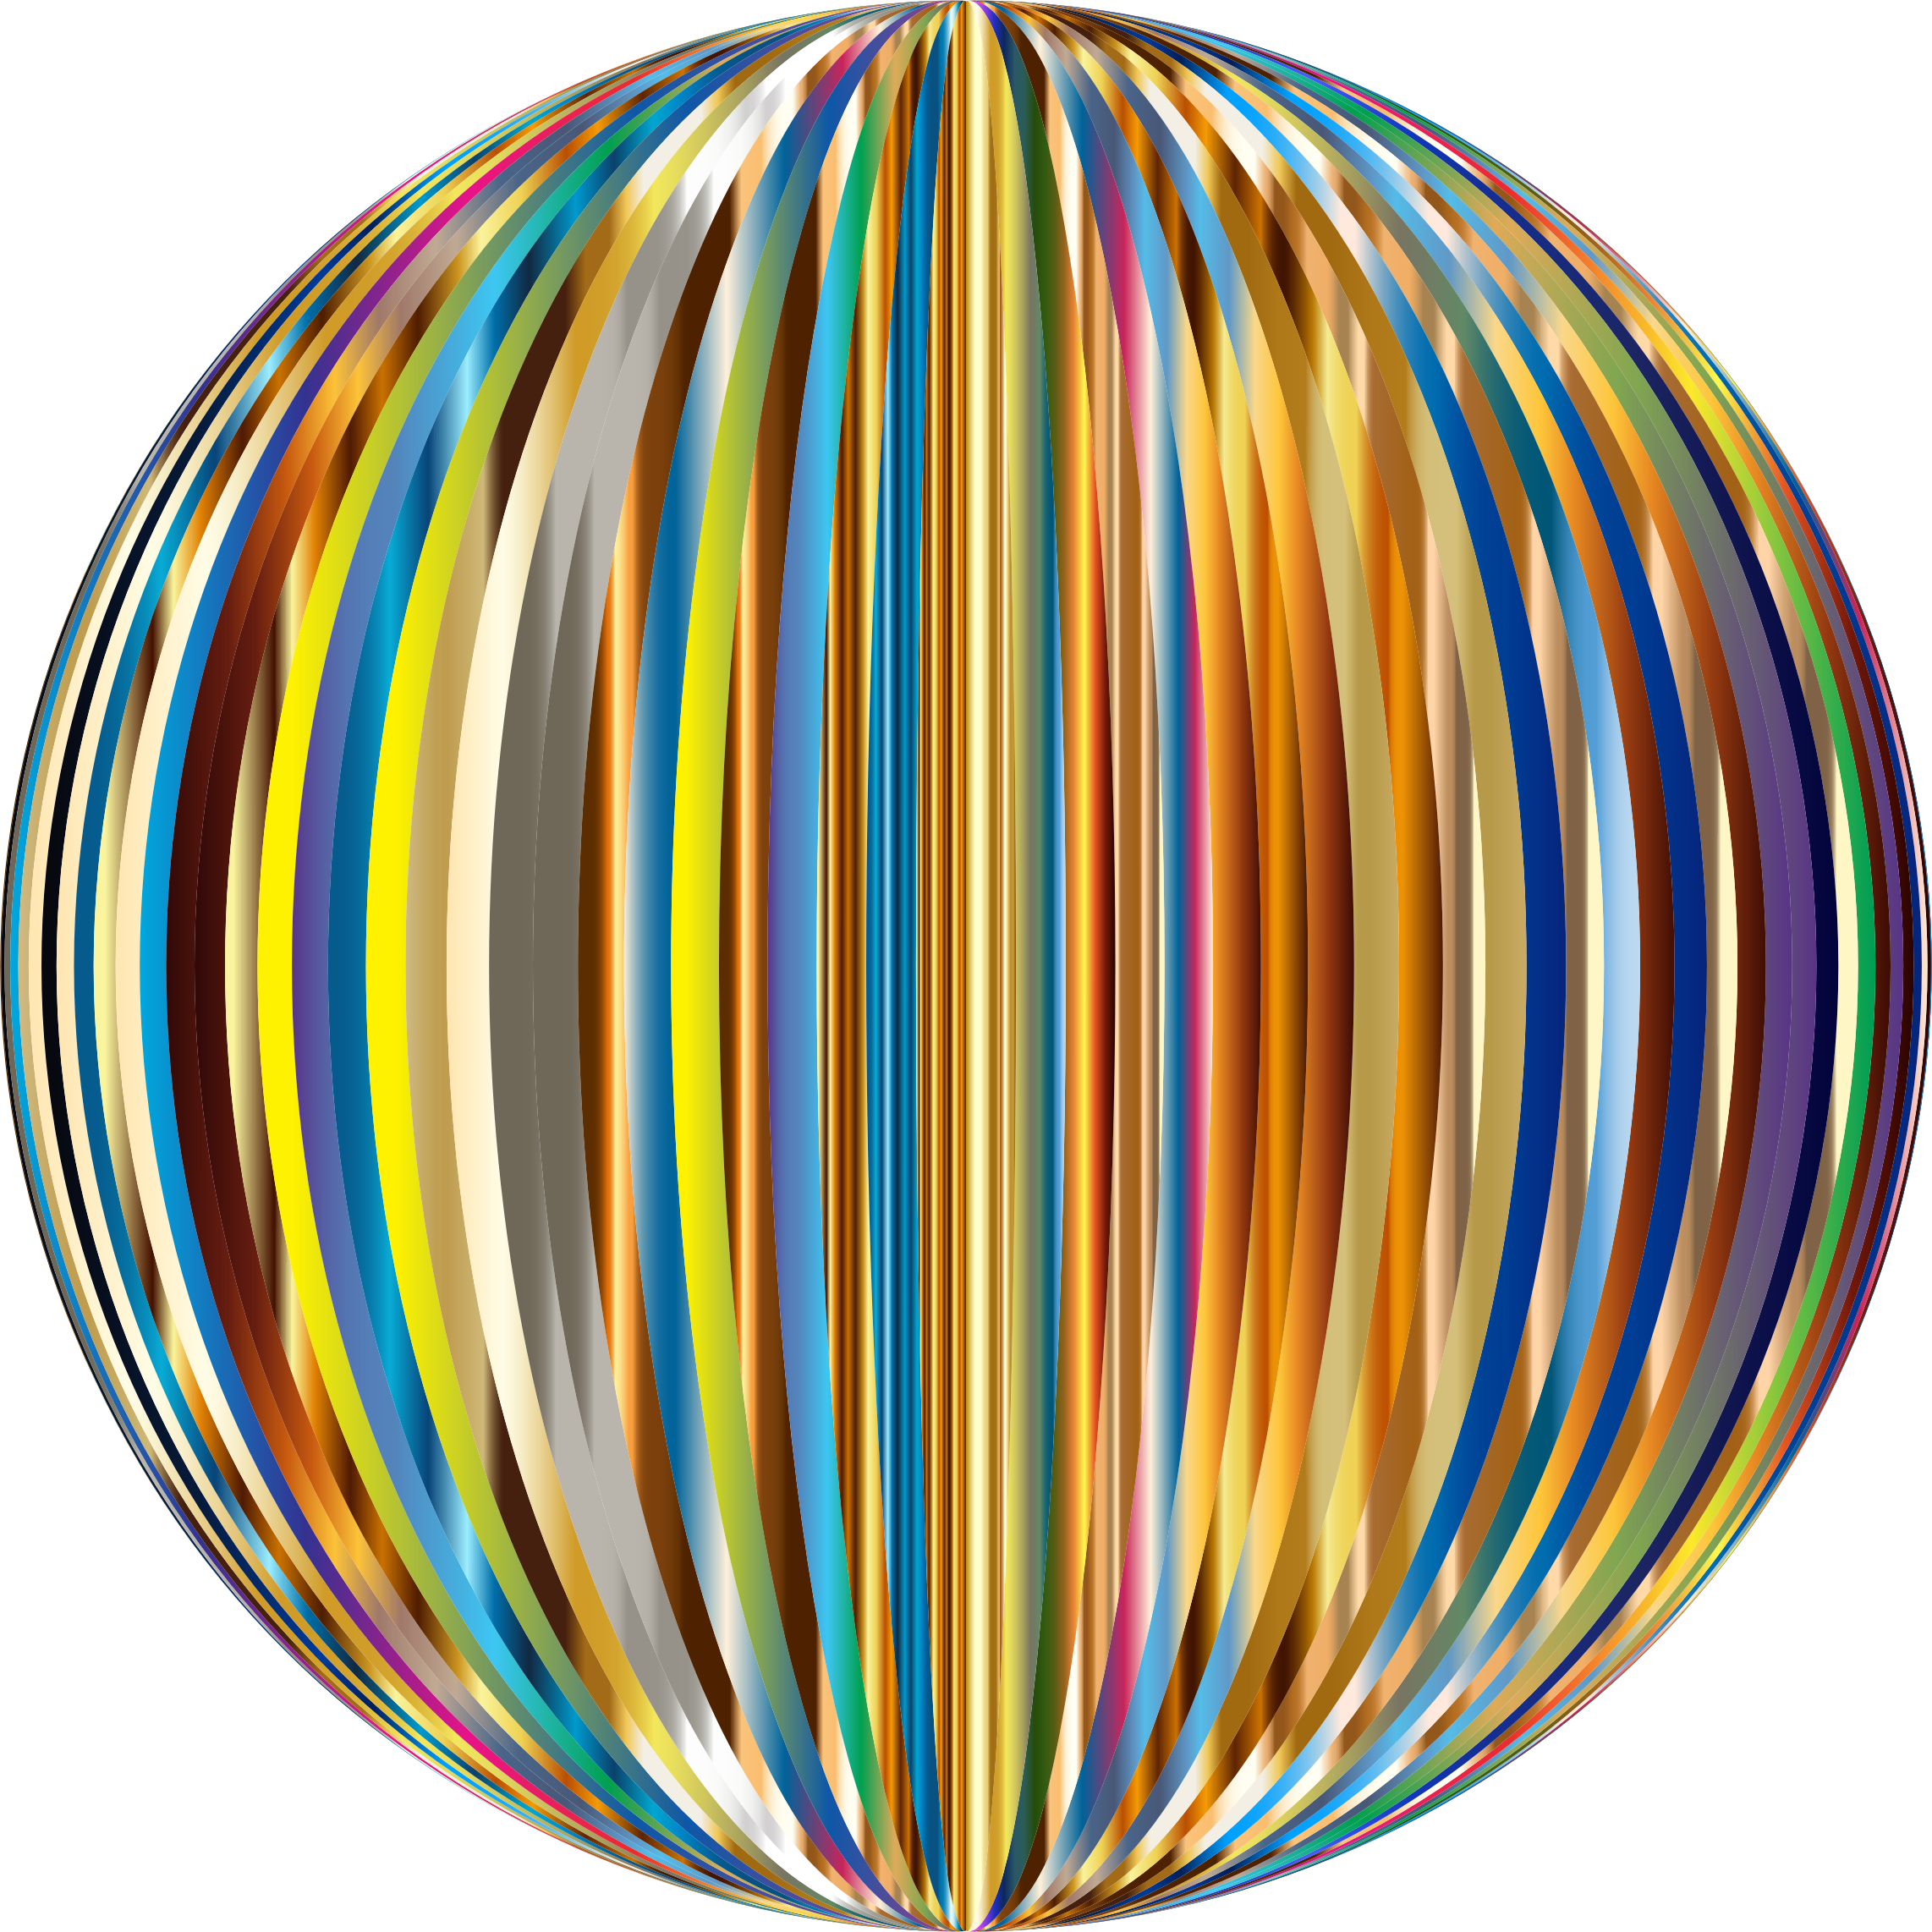 Vibrant Sphere 4 by GDJ